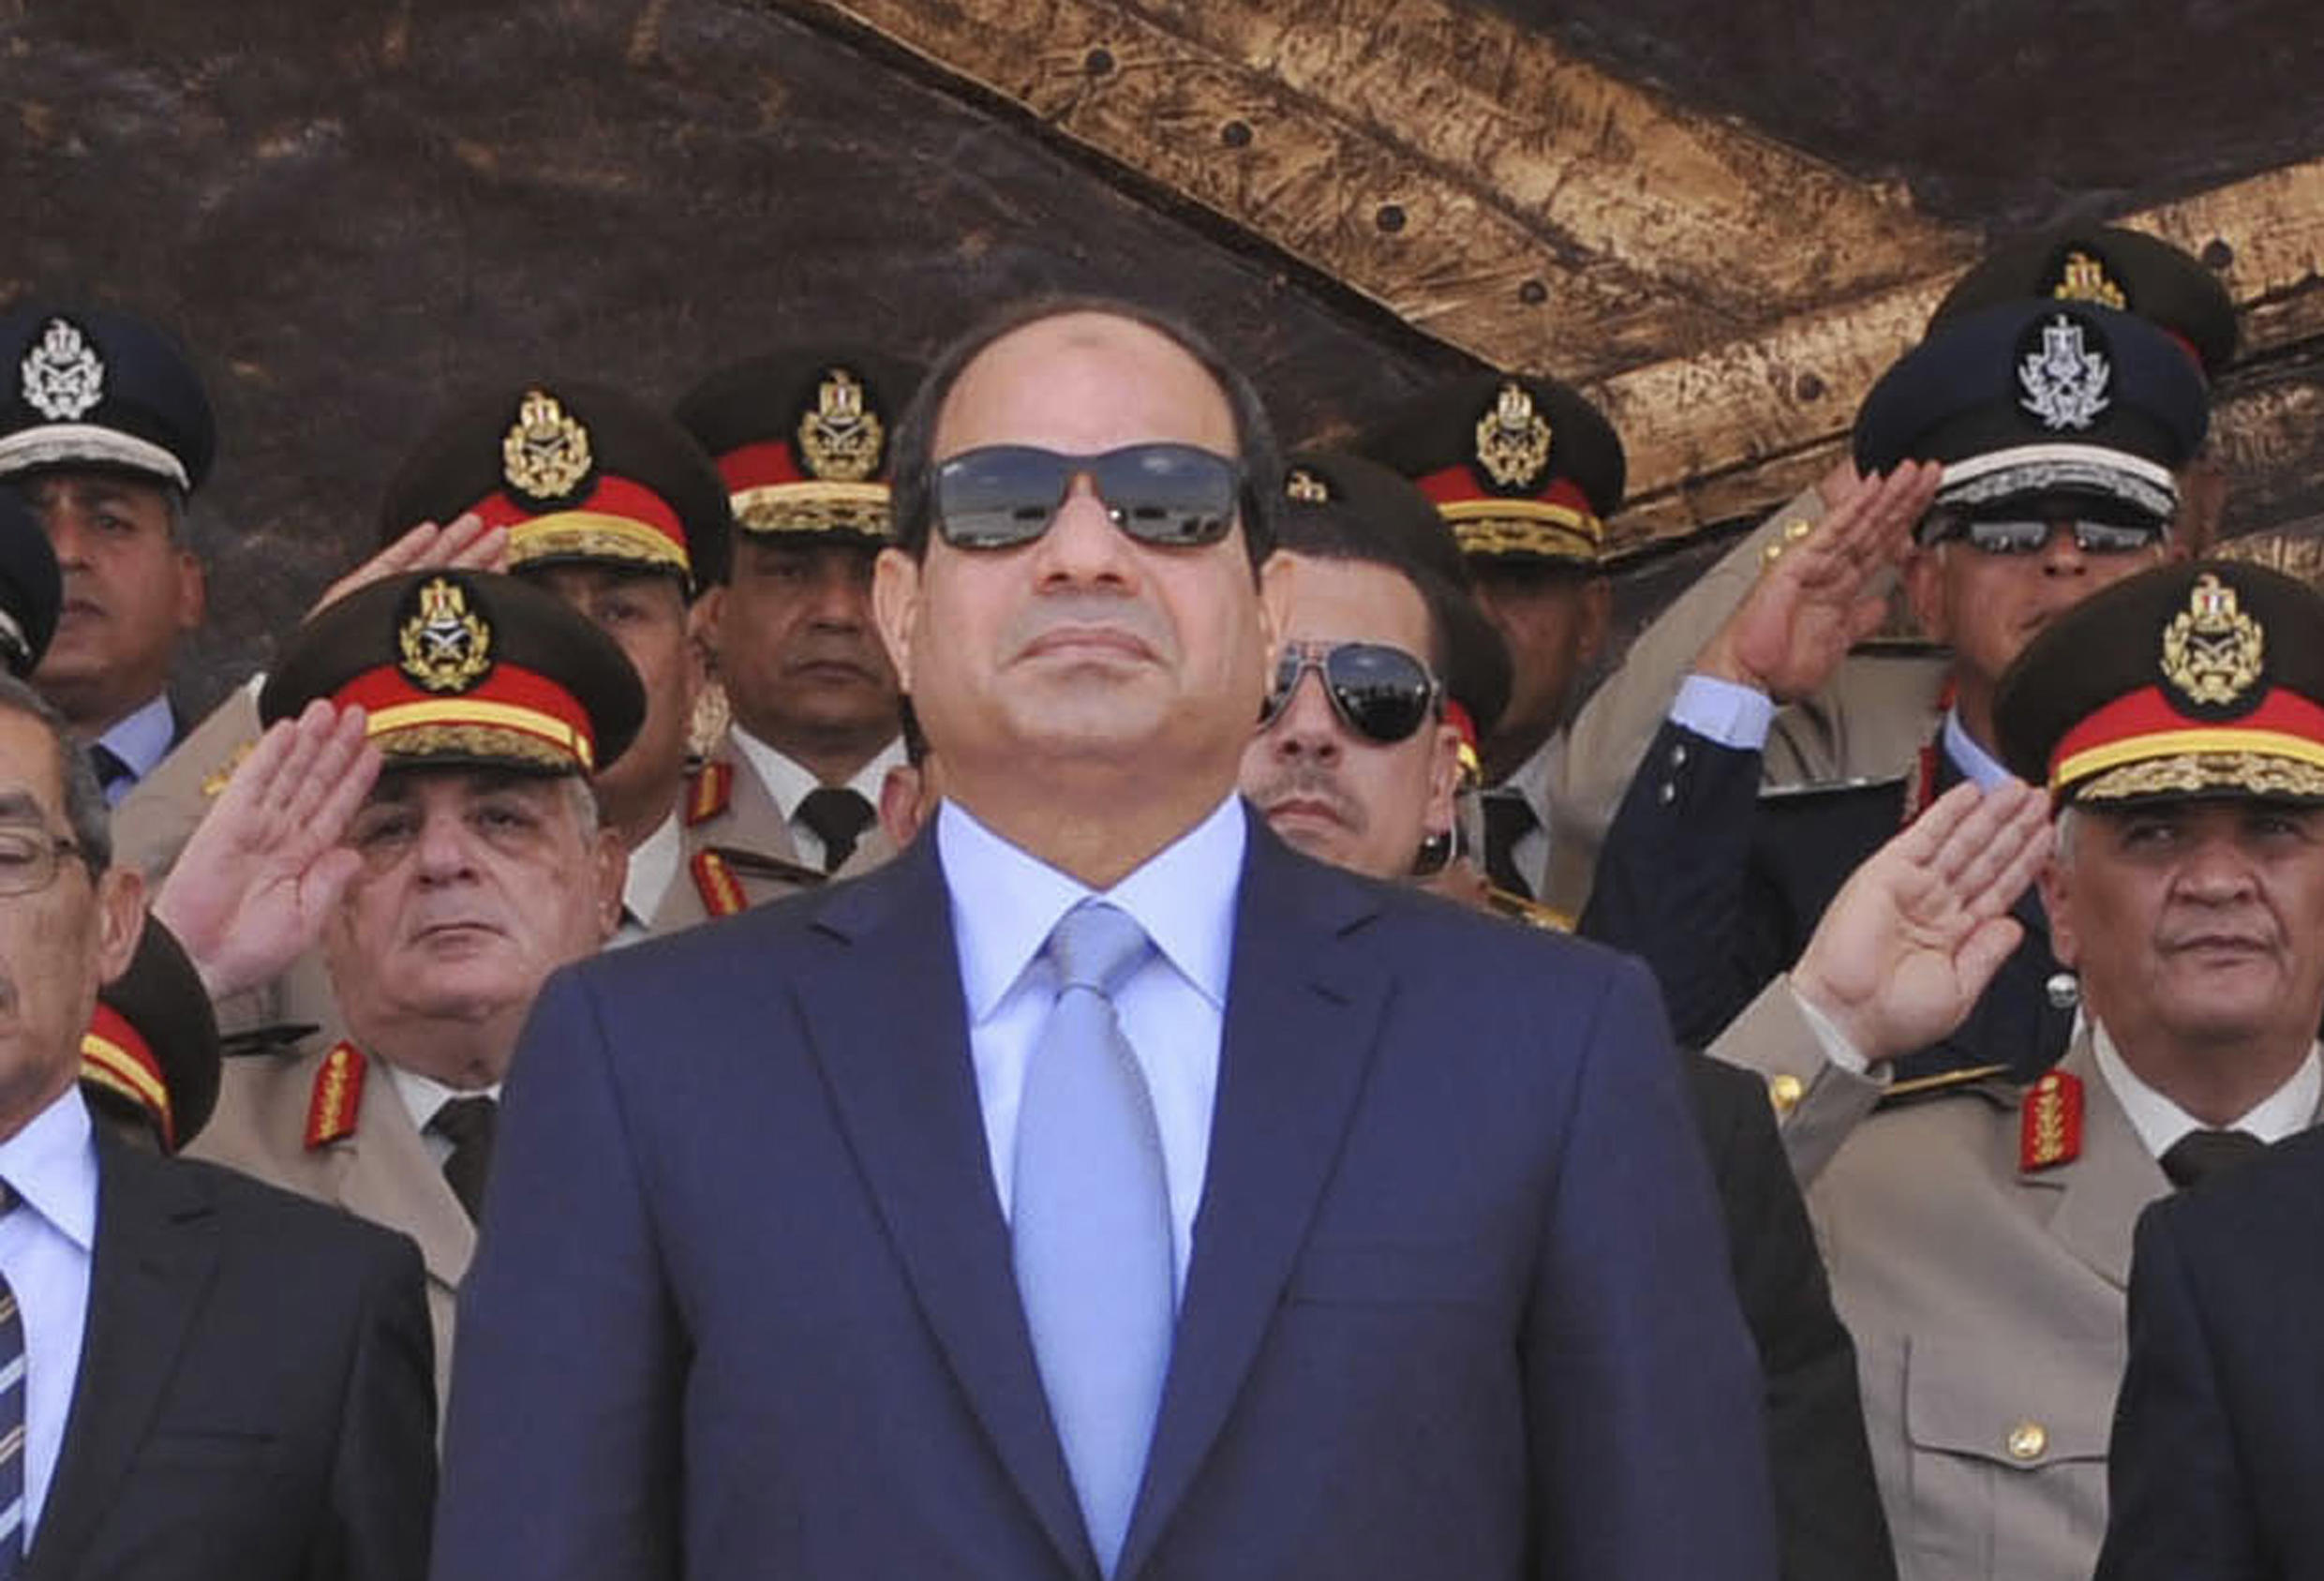 President Abdel Fattah al-Sissi surrounded by his generals